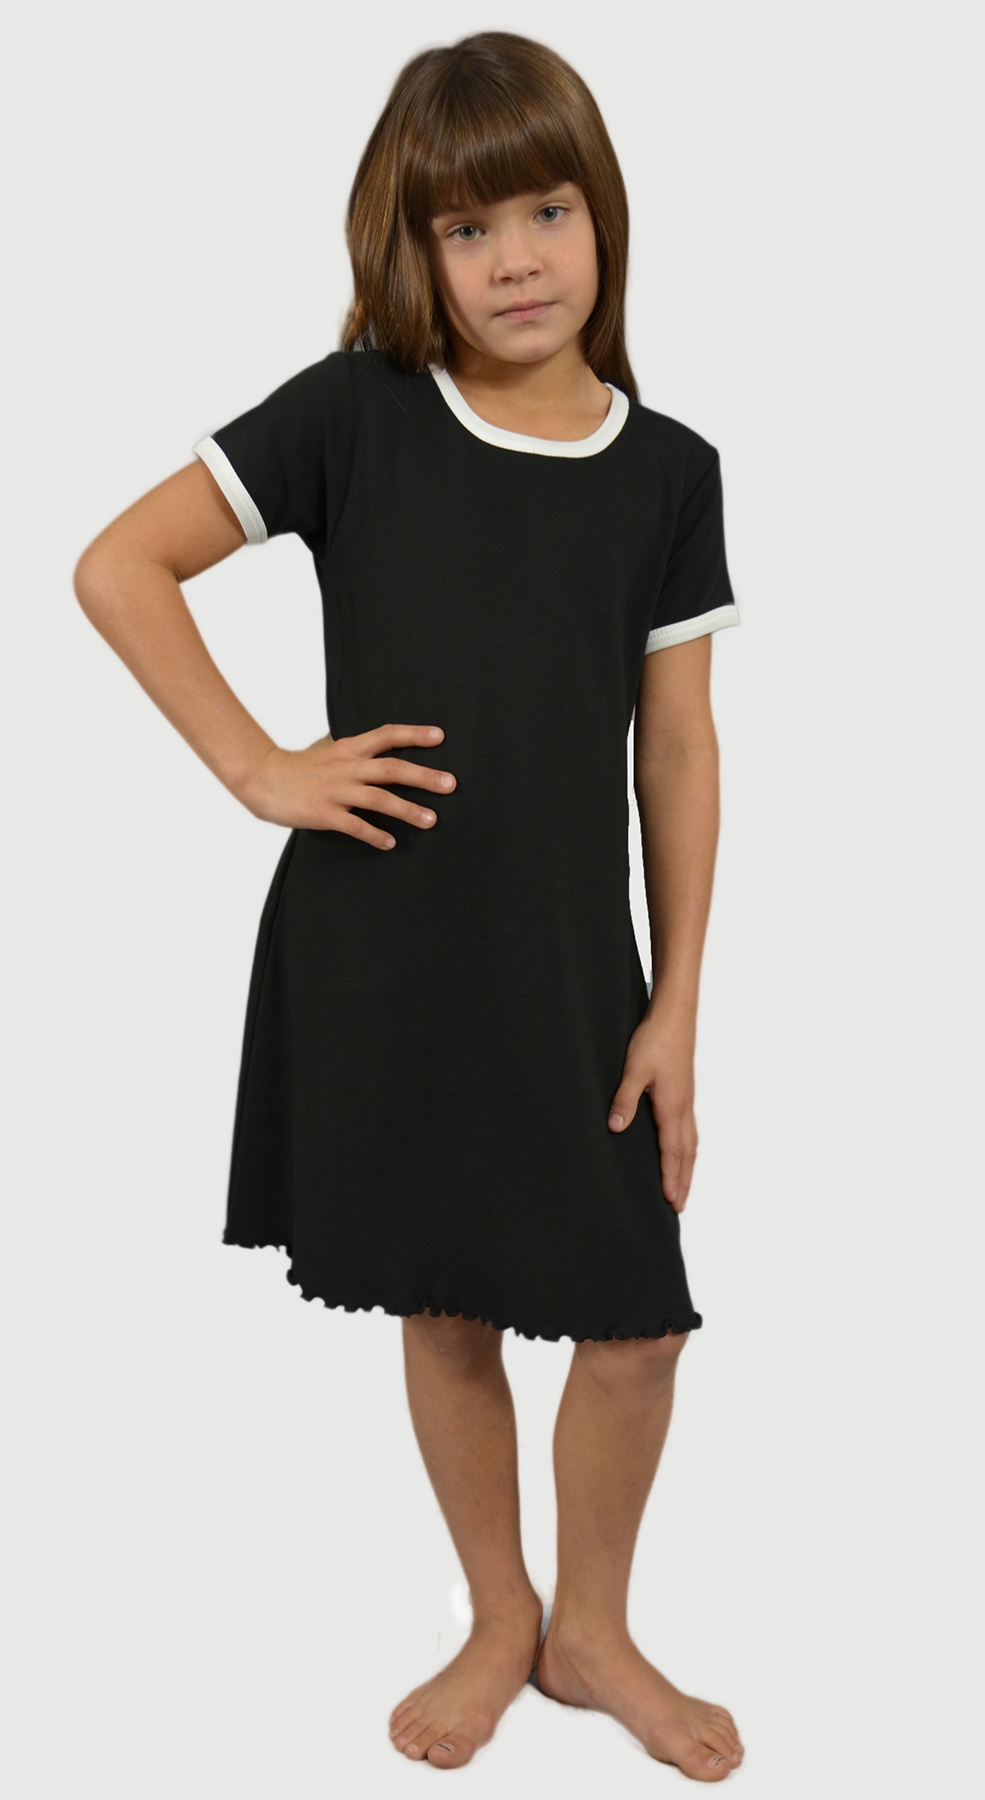 Monag 400120 - Interlock Short Sleeve Ringer Dress